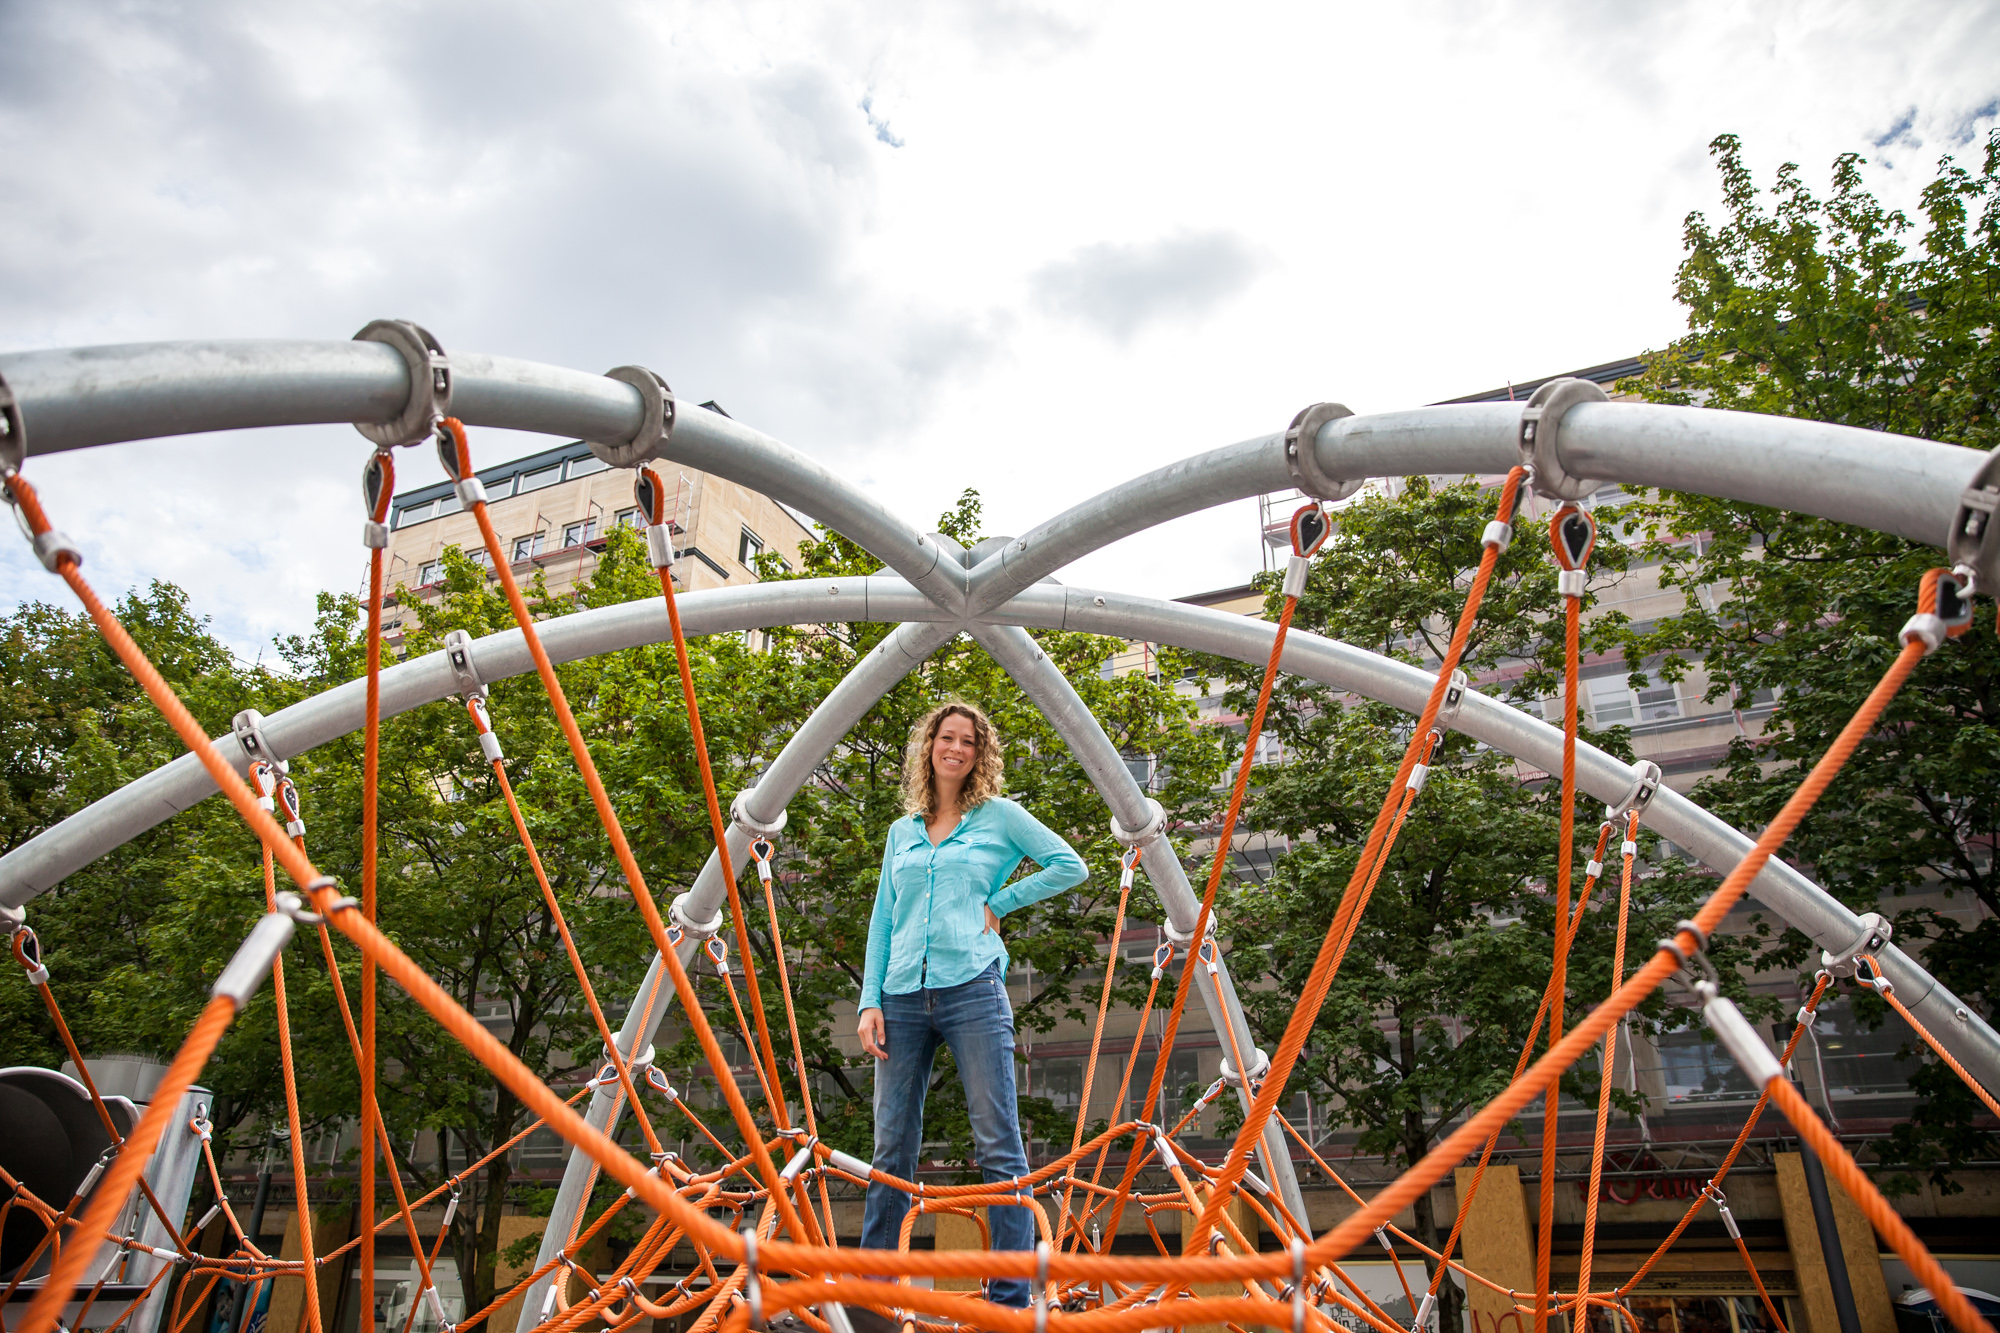 The oldest kid on the playground. I'm sure I'm breaking some German law by doing this too!